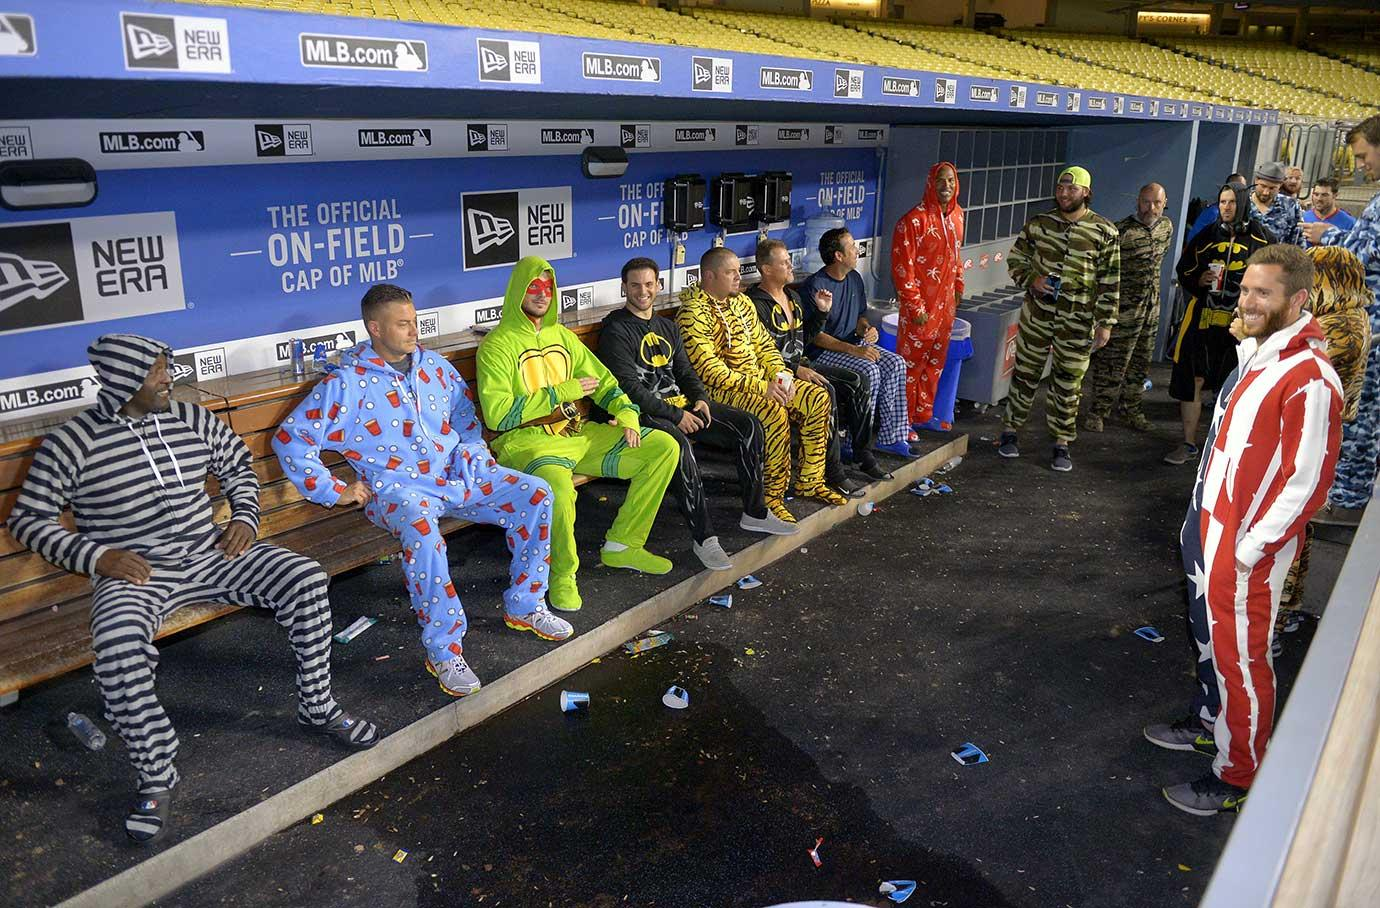 Chicago Cubs players wearing pajamas after their game against the Dodgers.